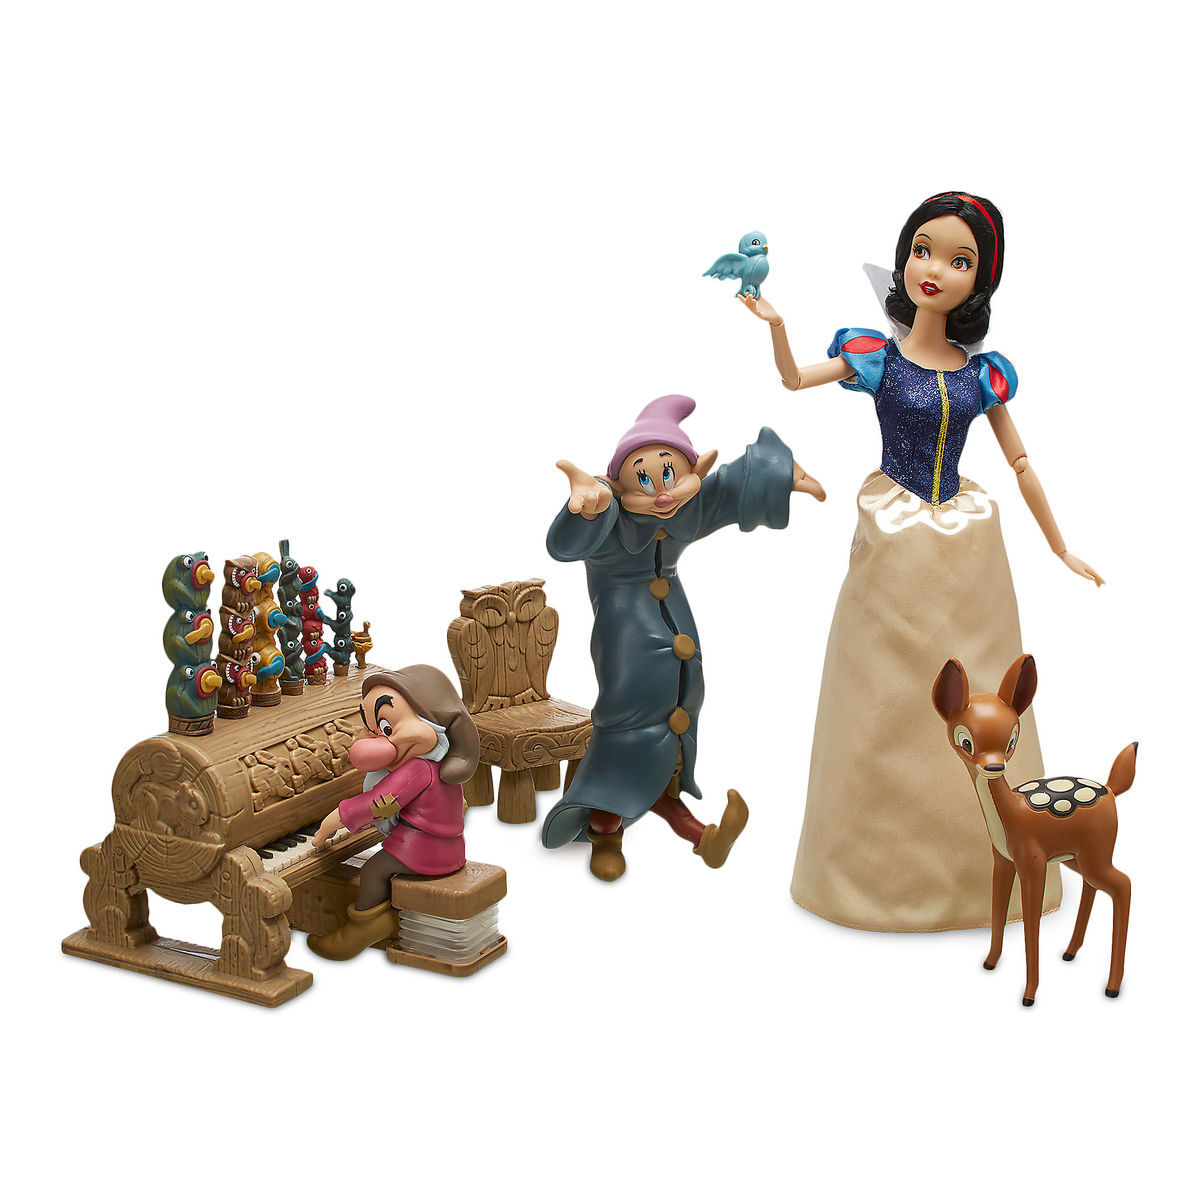 5b715d21d85 Product Image of Snow White Dance Party Playset   1